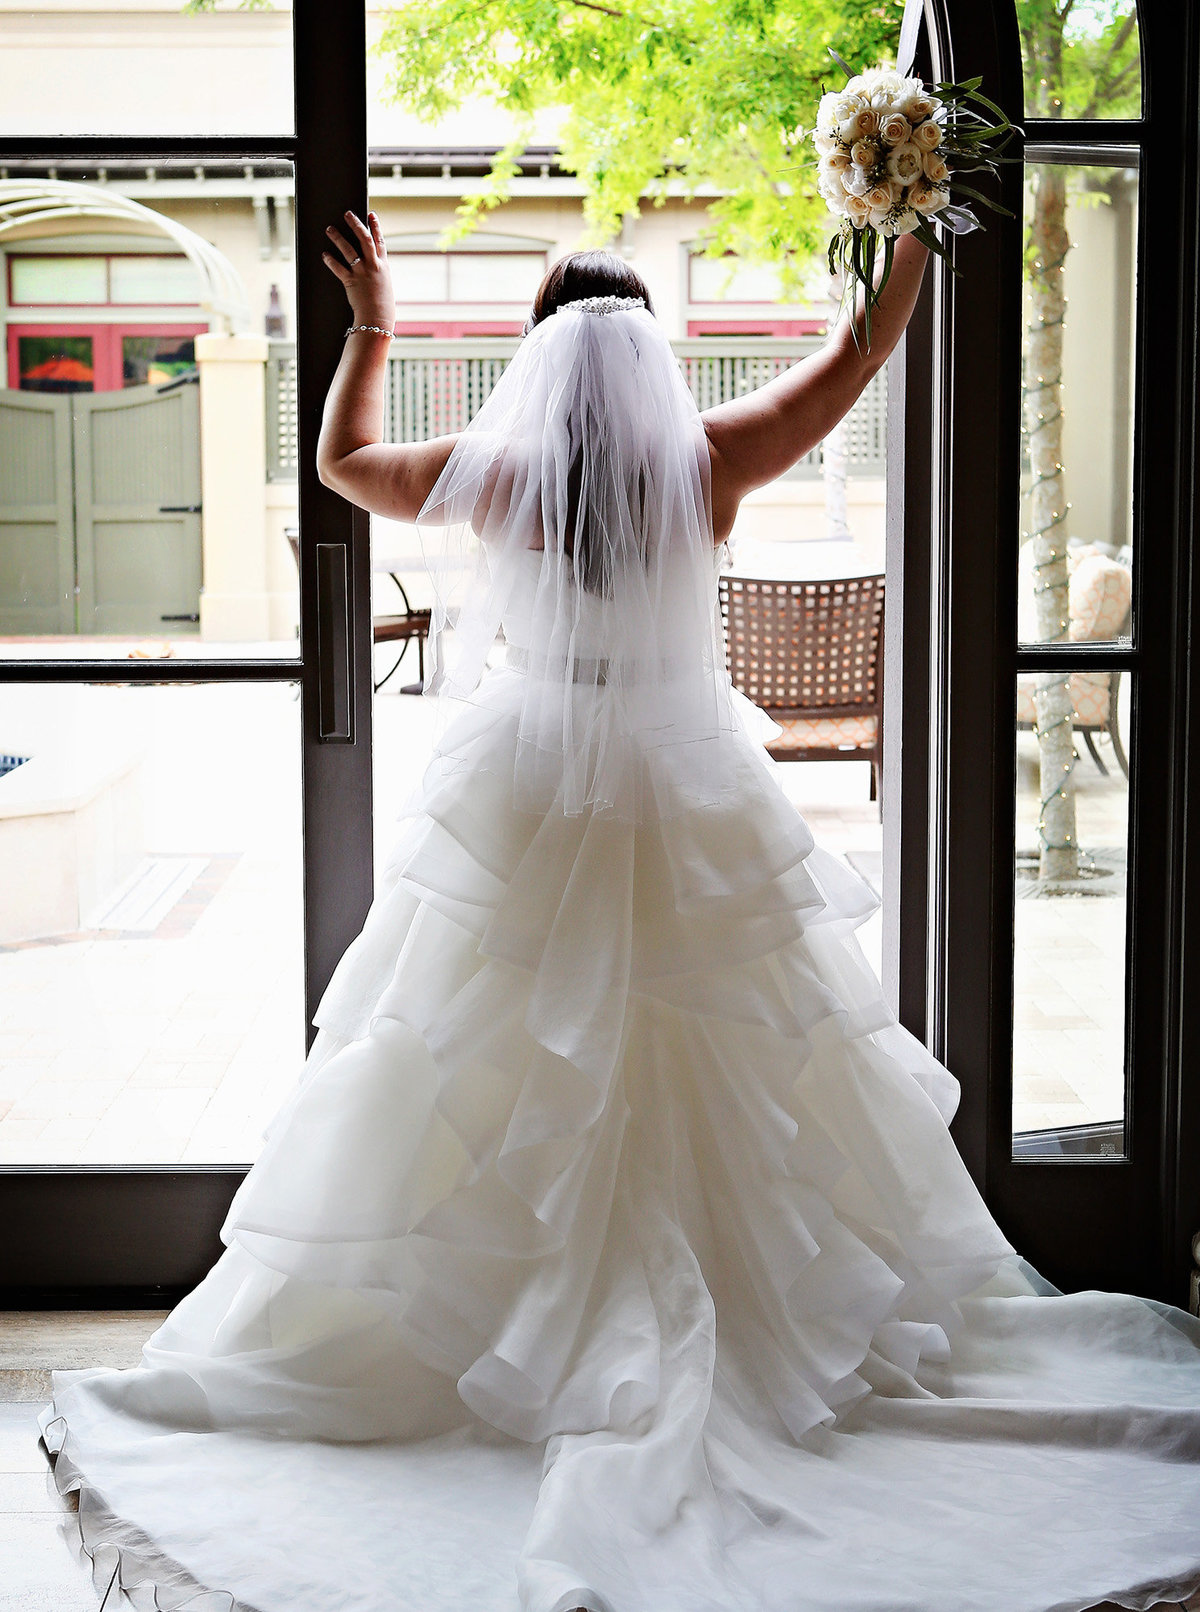 bride-in-doorway